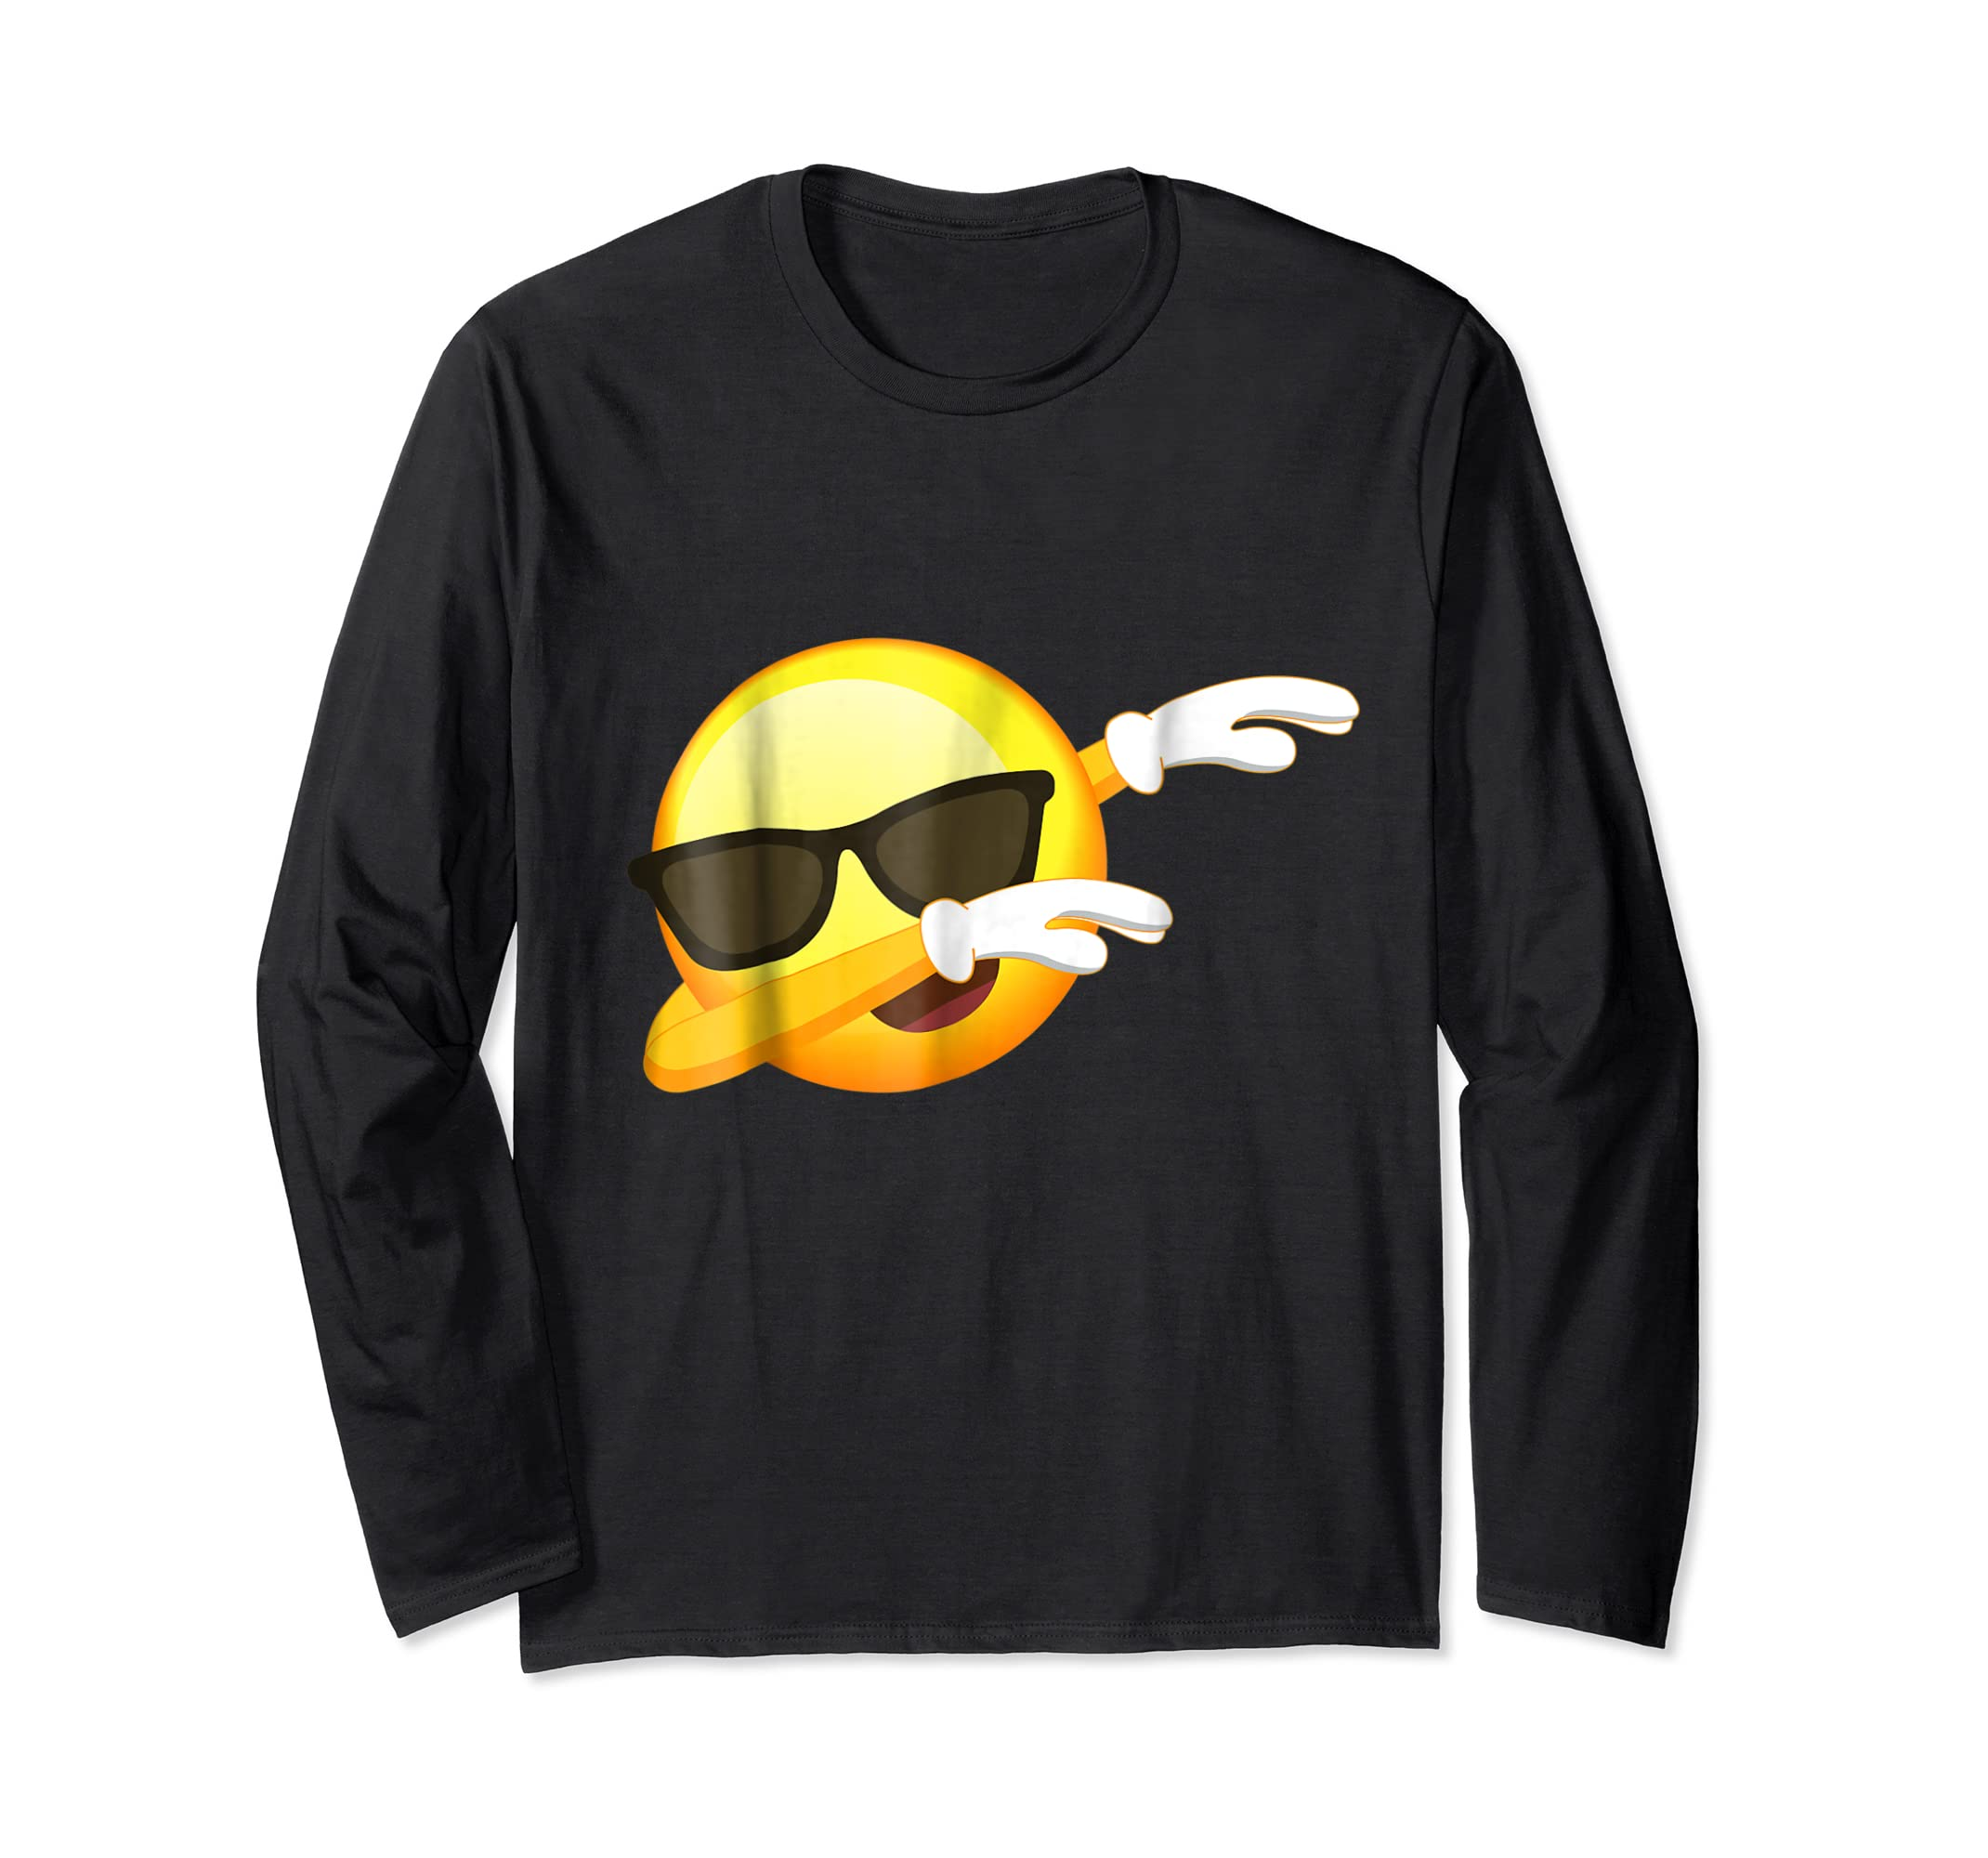 Funny Dabbing Emoji Shirt - Cool Emoji Dab T-Shirt-Long Sleeve-Black